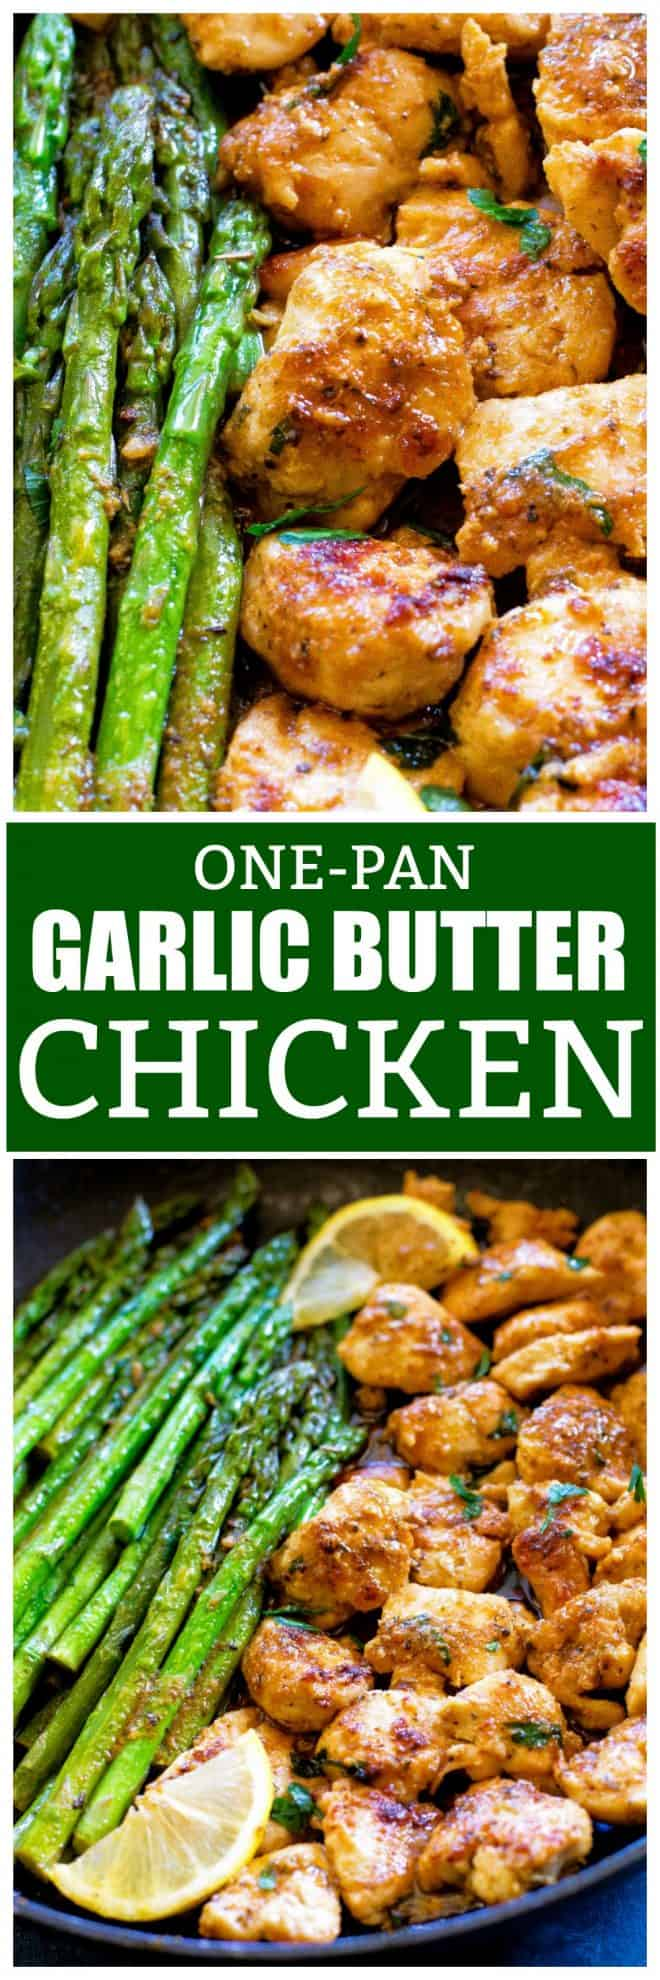 One-Pan Garlic Butter Chicken made in under 20 minutes and full of flavor! #onepan #garlic #butter #chicken #recipe #healthy #keto #lowcarb